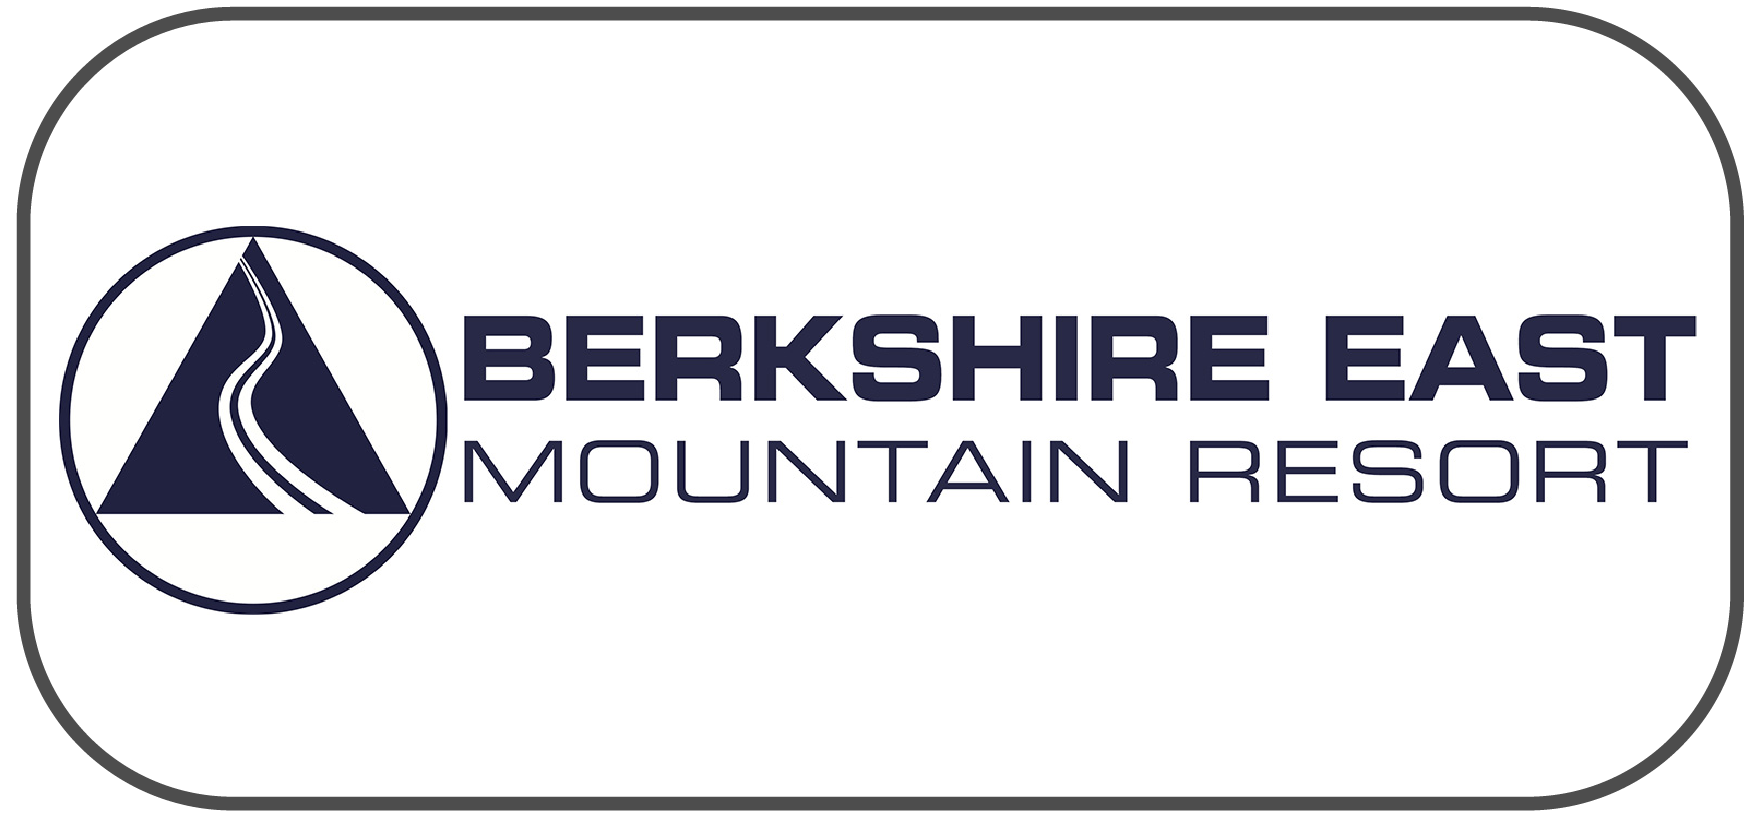 Berkshire East Netted Attraction